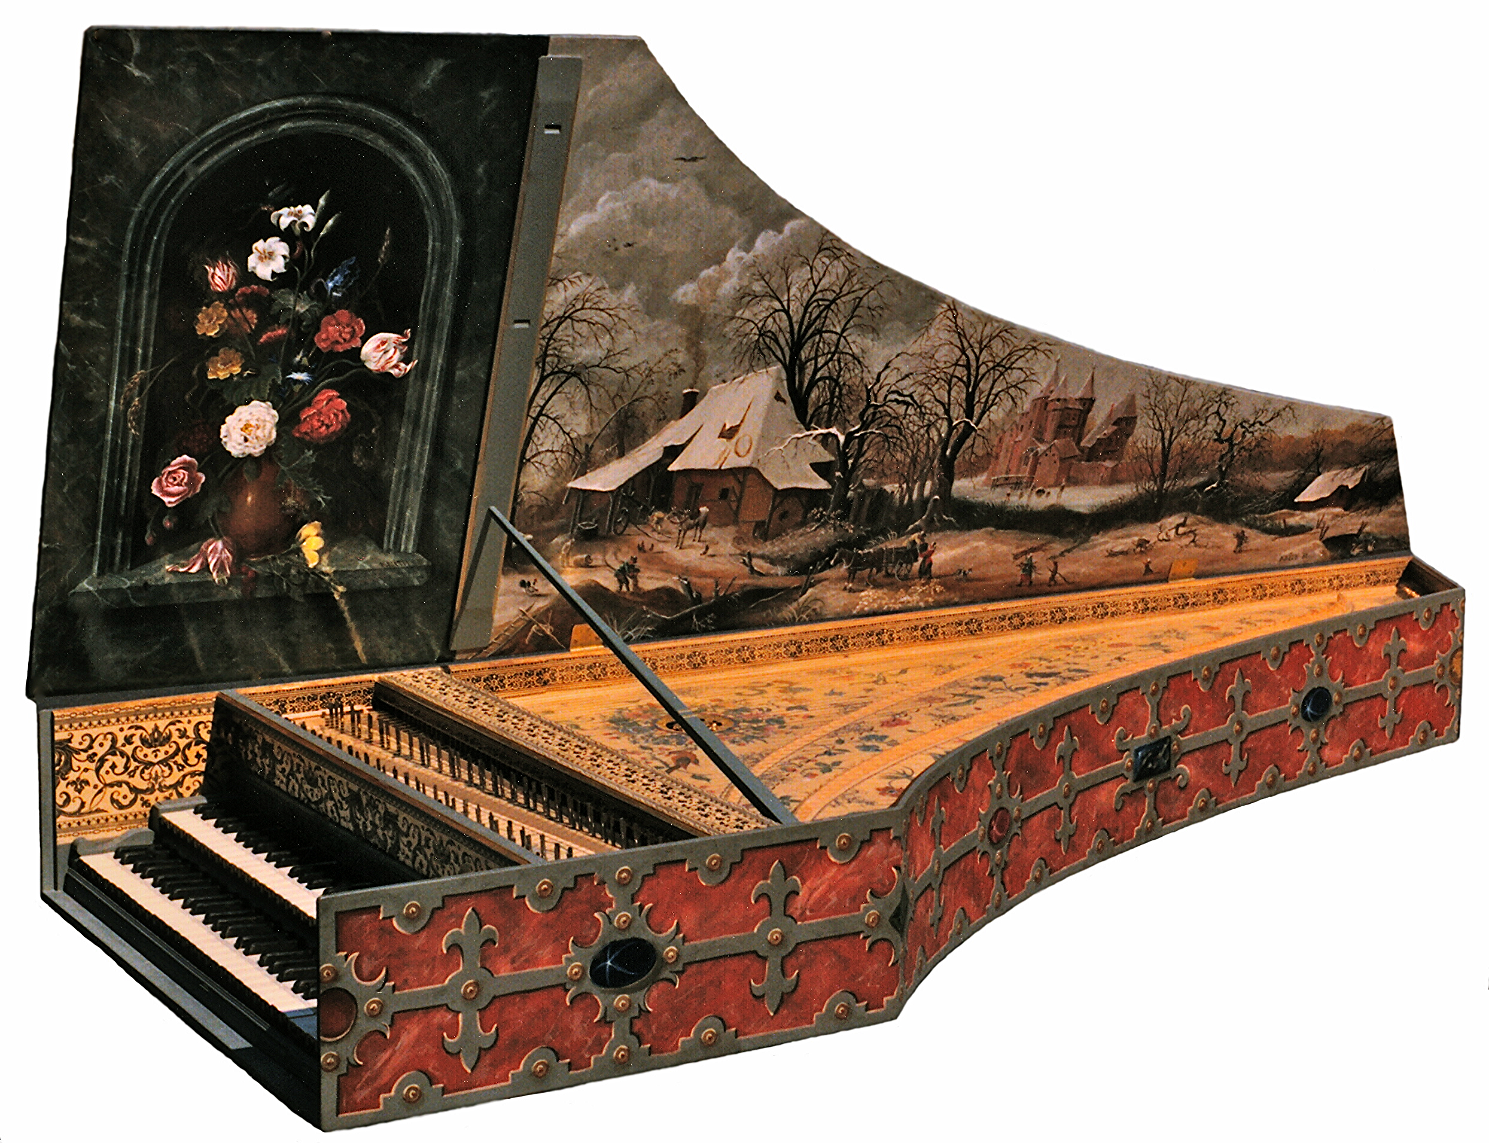 Flemish Harpsichord my opus 1 9 4 after the ahaus ruckers of 1 6 4 0 belongs to Mirelle Lagace in Montreal., canada